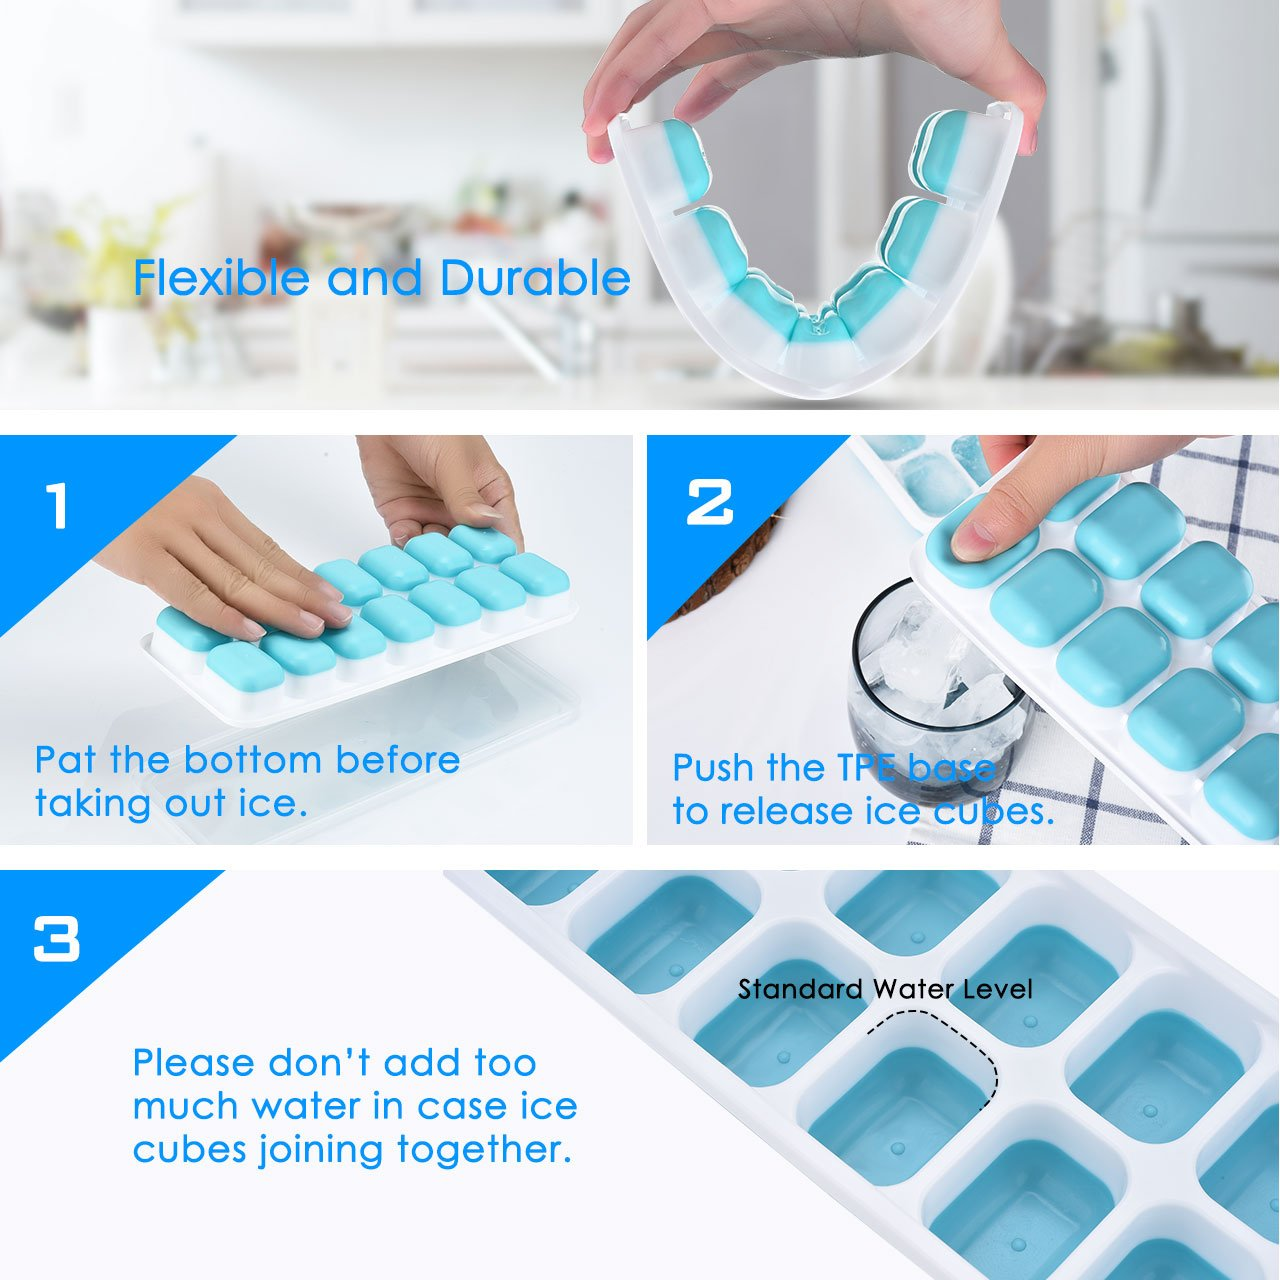 OMorc Ice Cube Trays 4 Pack, Easy-Release Silicone and Flexible 14-Ice Trays with Spill-Resistant Removable Lid, LFGB Certified & BPA Free, Stackable by OMORC (Image #4)